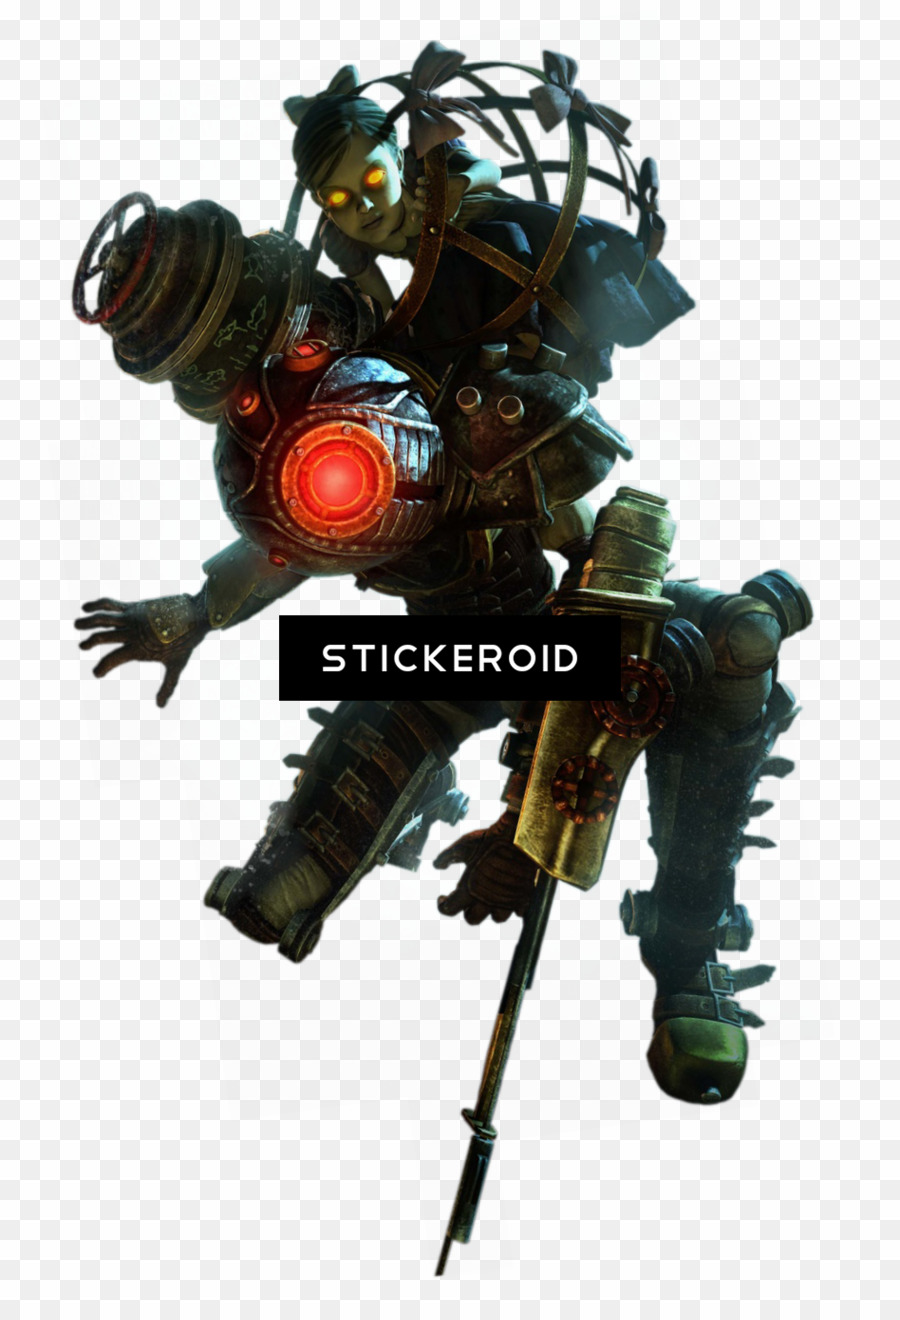 Bioshock 2 clipart graphic freeuse library Big Sister Bioshock 2 PNG Bioshock 2 Bioshock Infinite Clipart ... graphic freeuse library